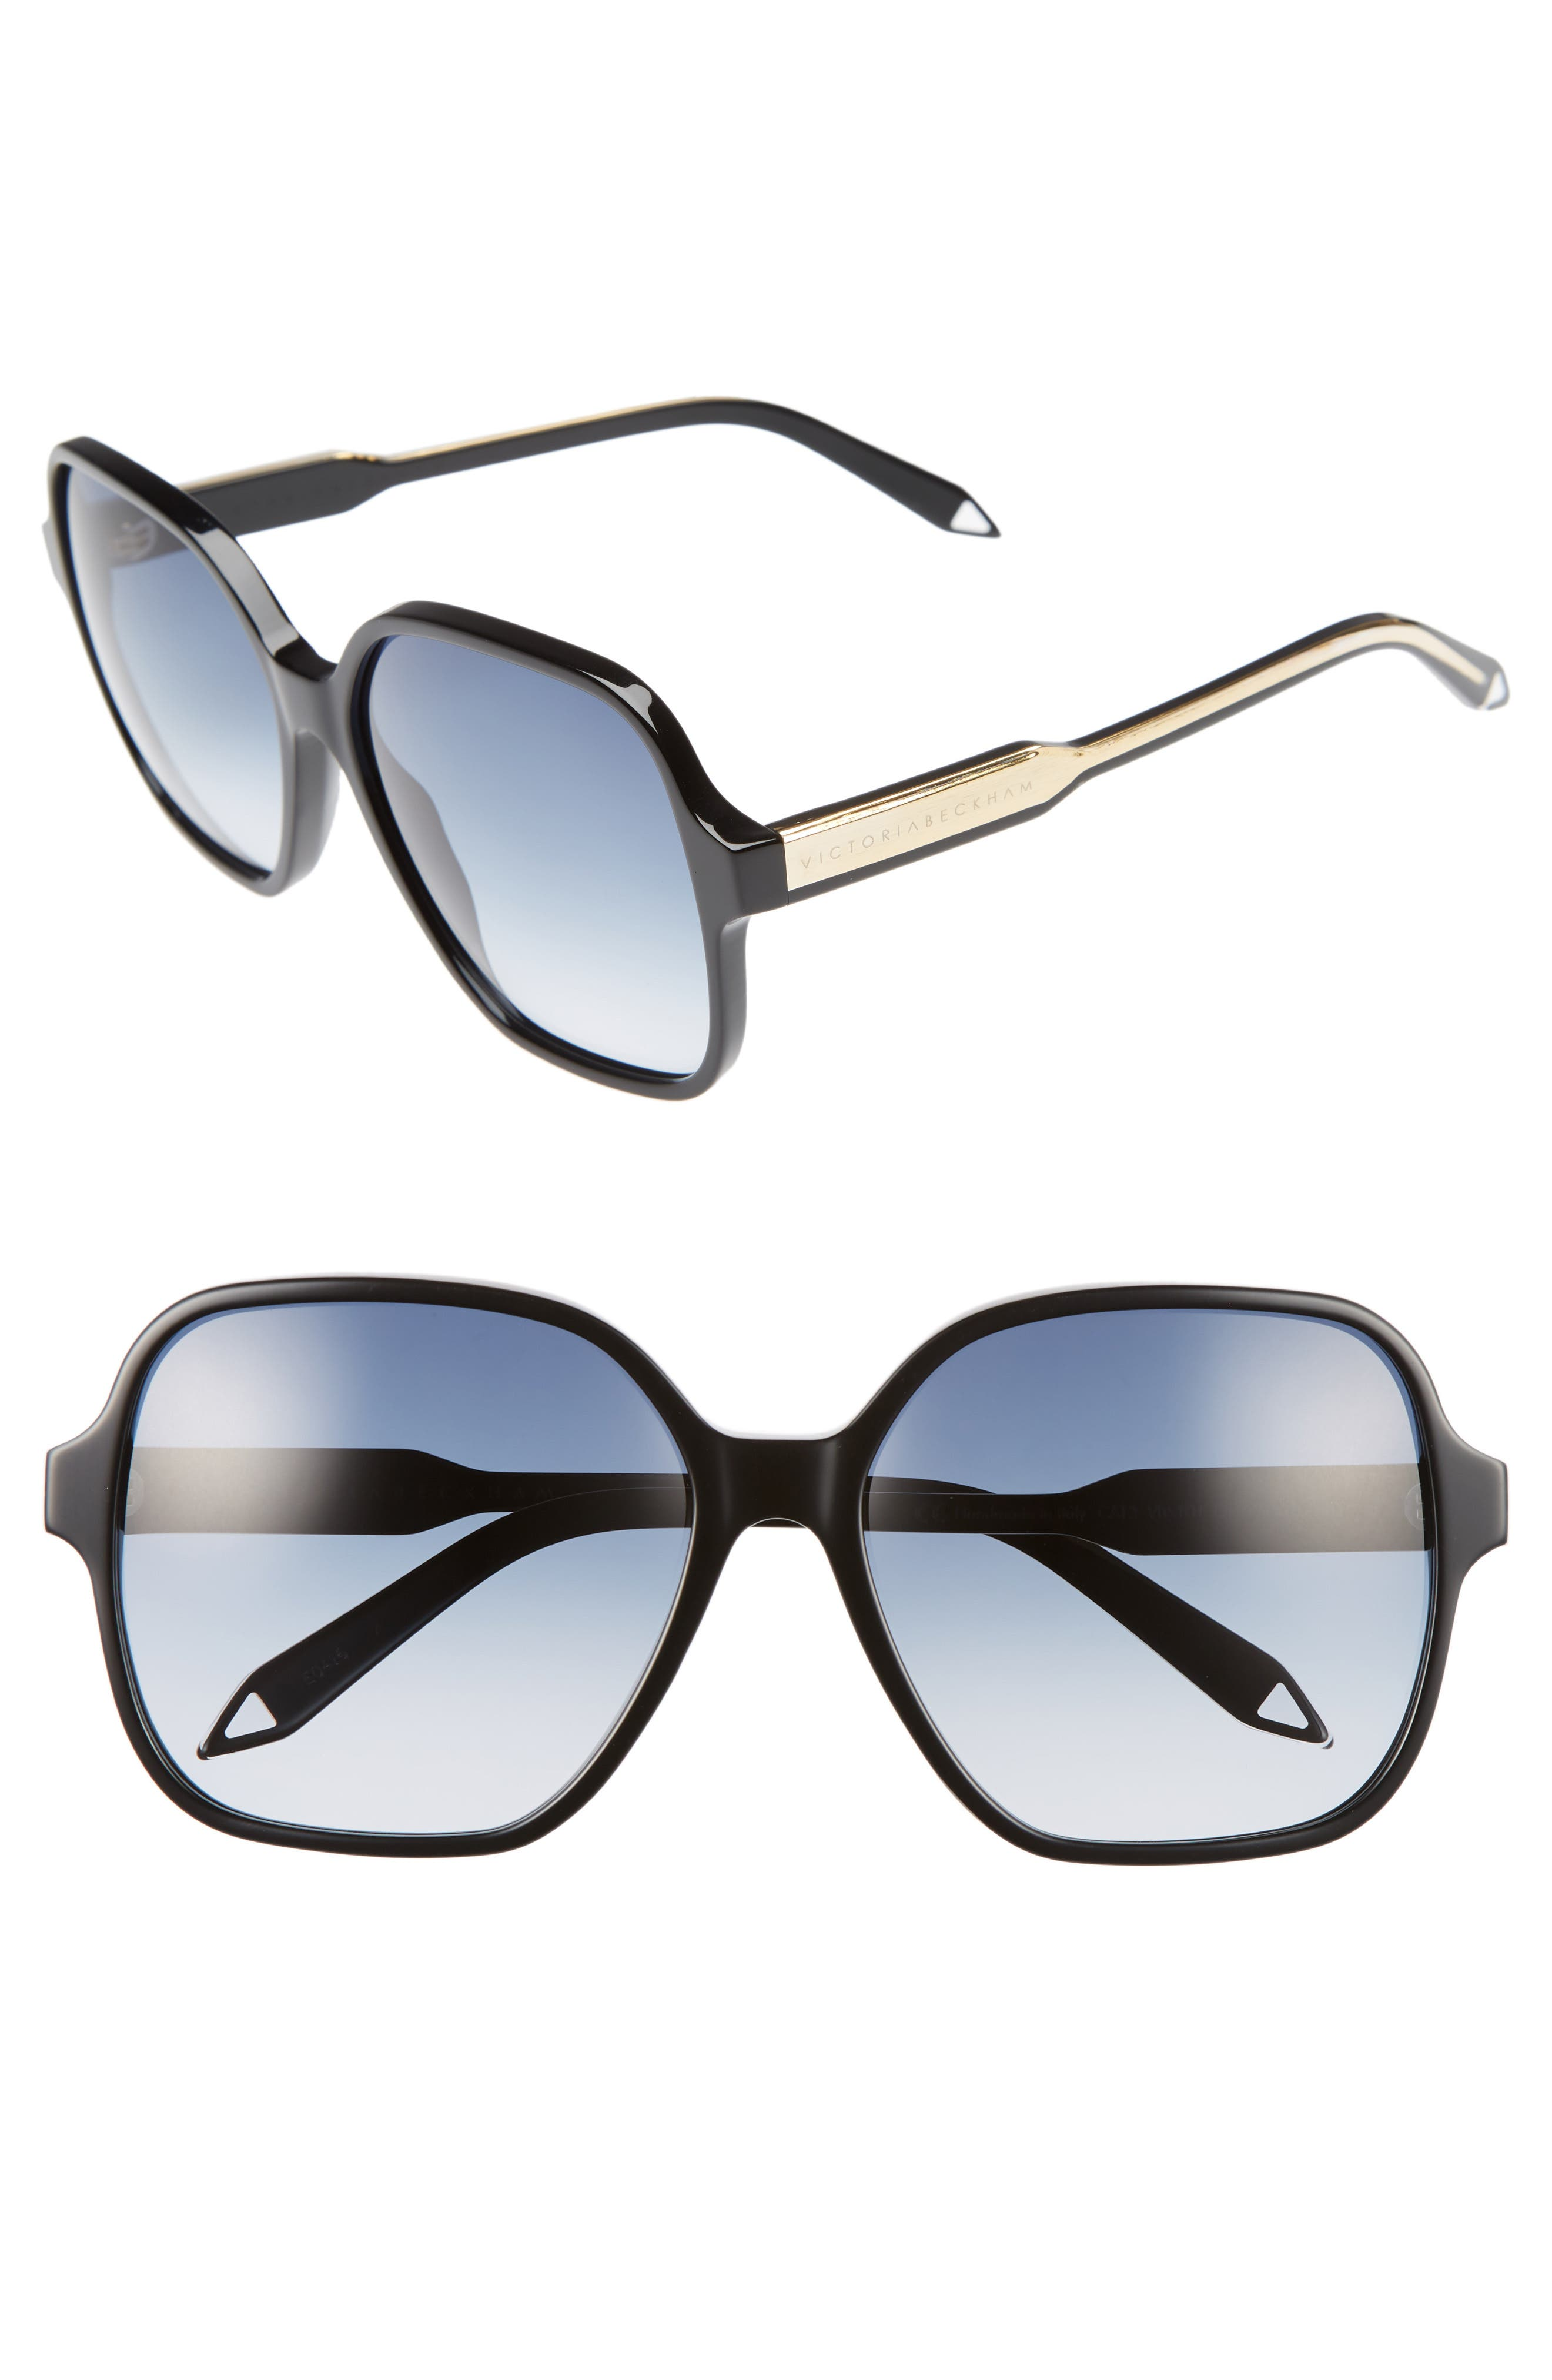 Main Image - Victoria Beckham Iconic Square 59mm Sunglasses